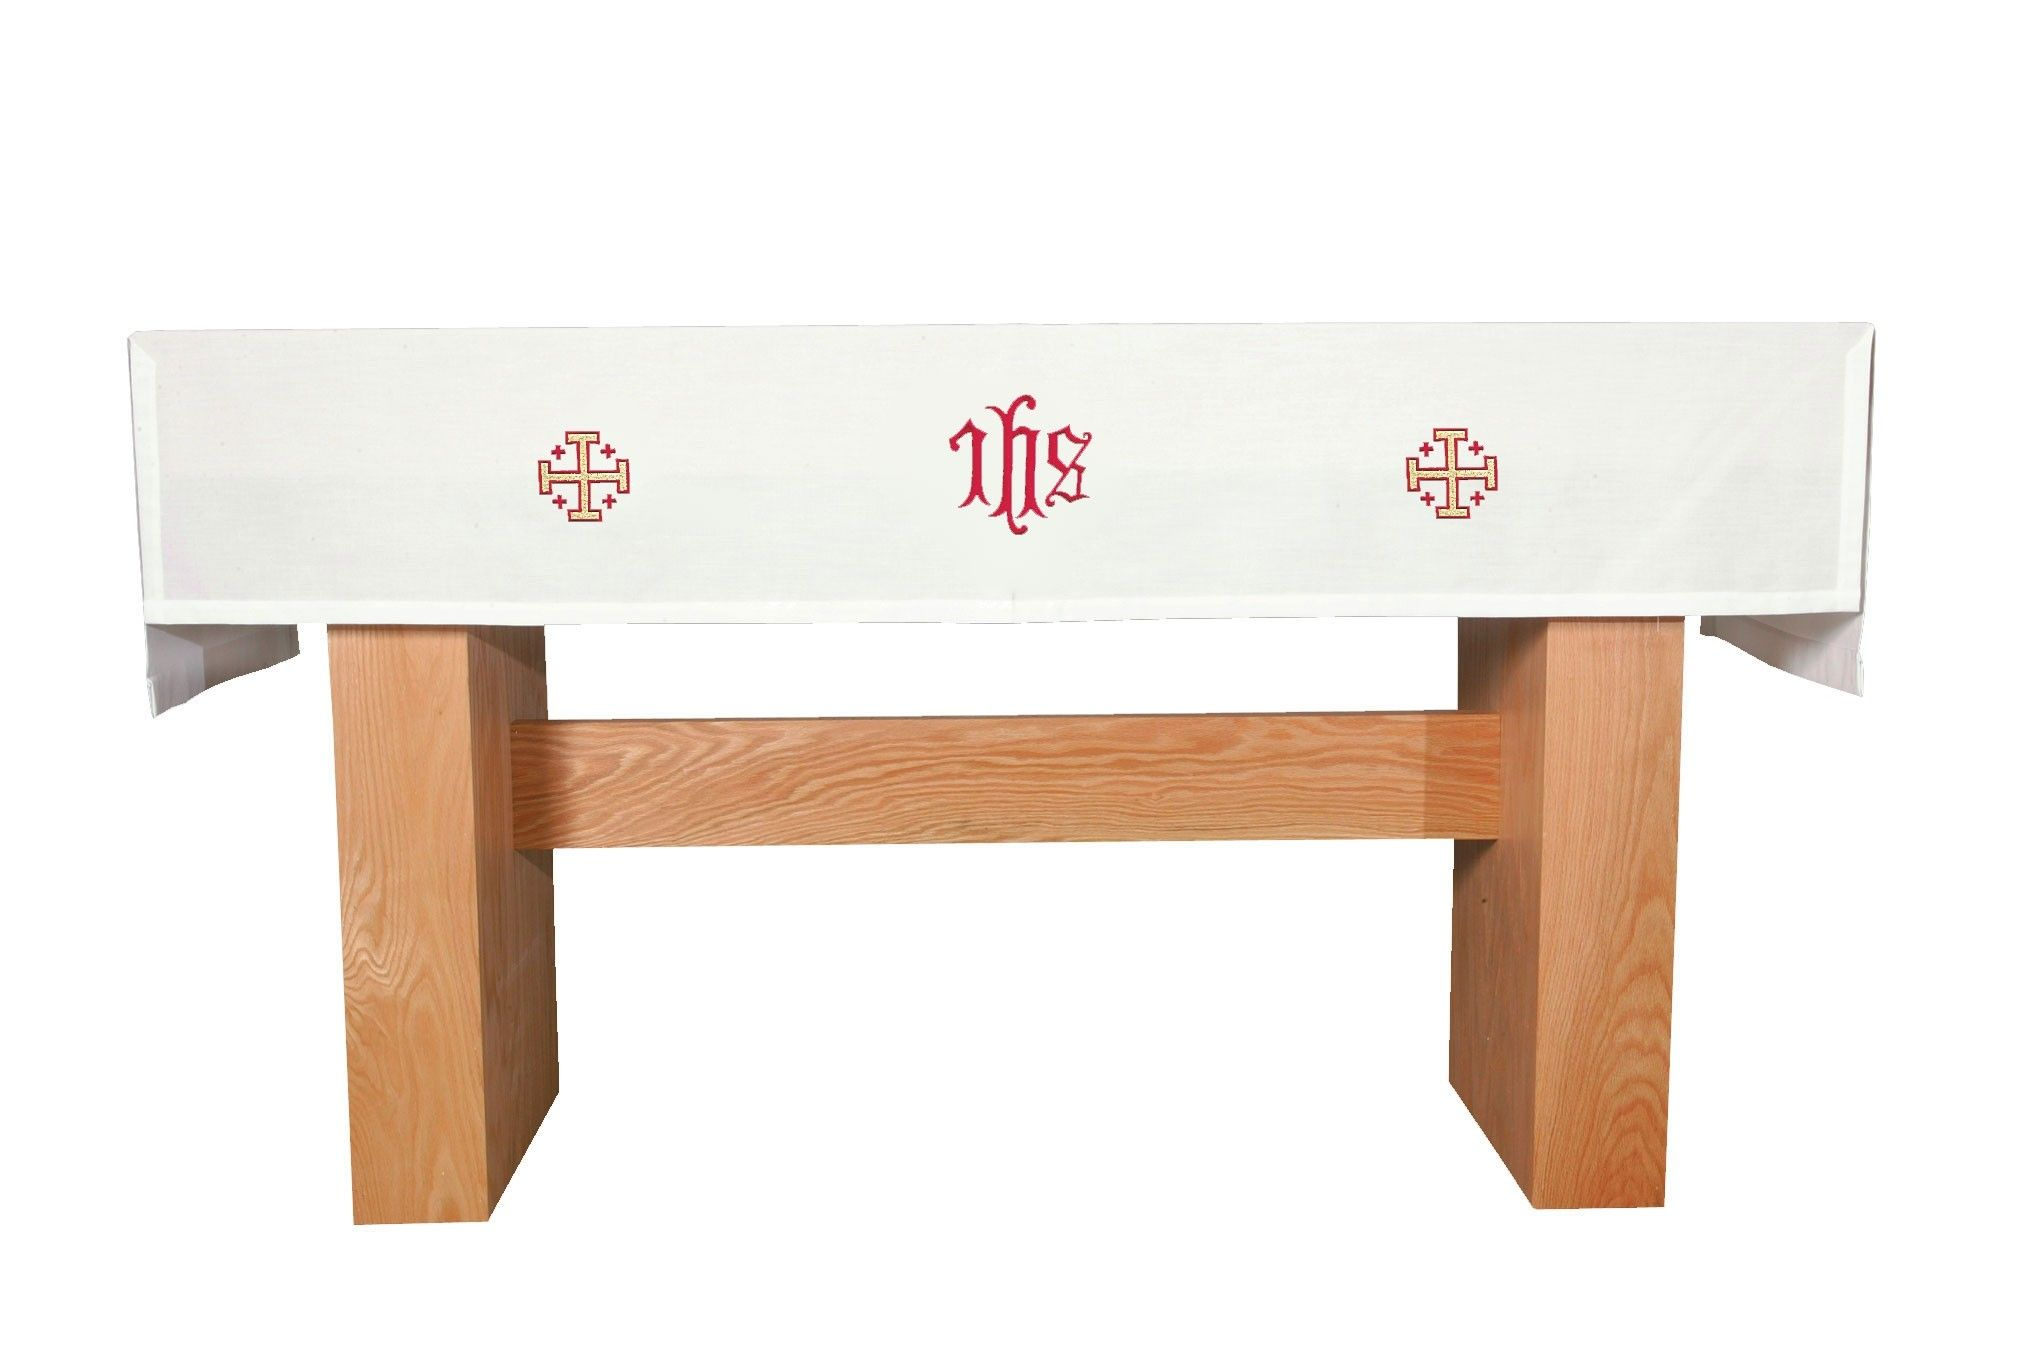 183 & IHS Jerusalem Cross Communion Table Cover features washable fabric ...